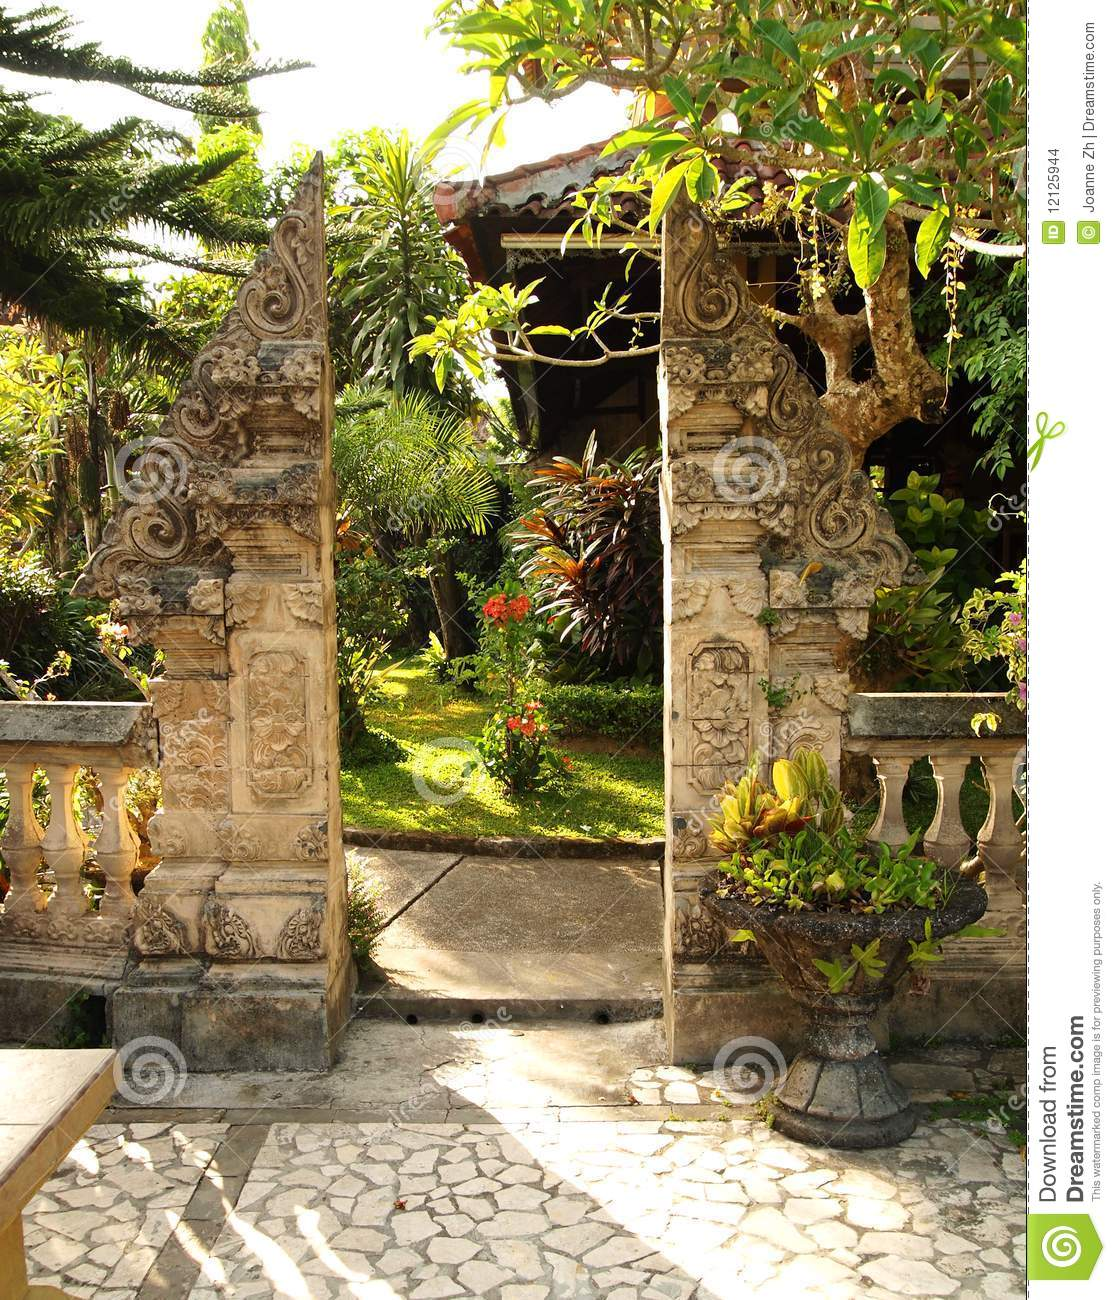 Traditional Split Gate In Balinese Garden Stock Images - Image ...